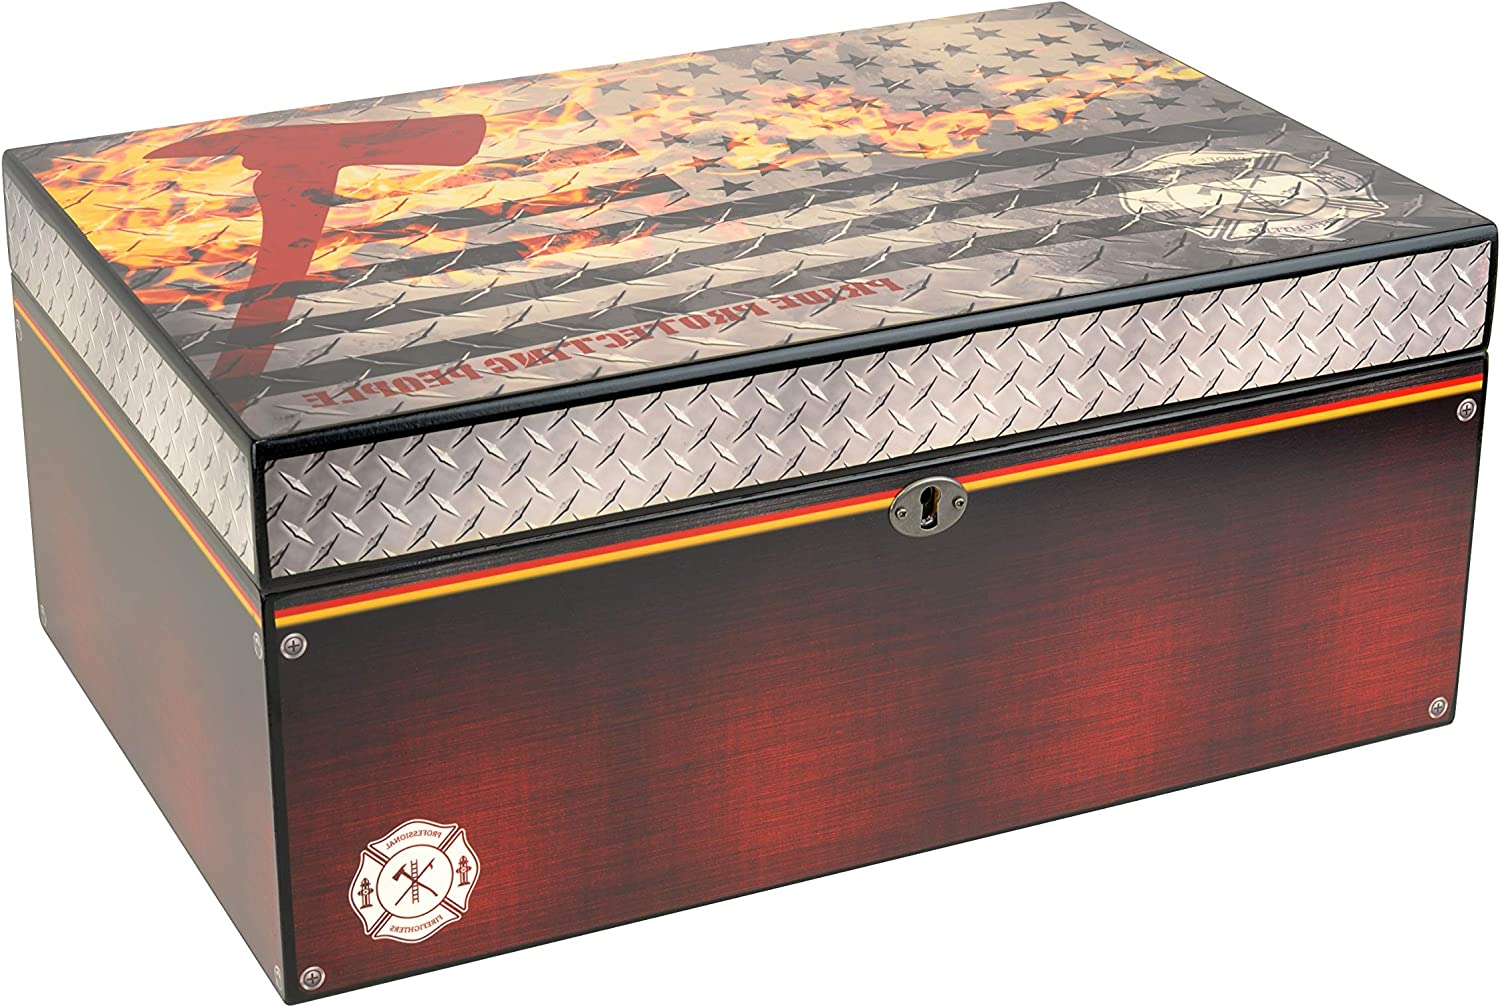 Humidor Supreme Red Line FD, Cigar Humidor Honoring Firefighters, Spanish Cedar Tray, 3 Dividers, Holds up to 100 Cigars, by Quality Importers